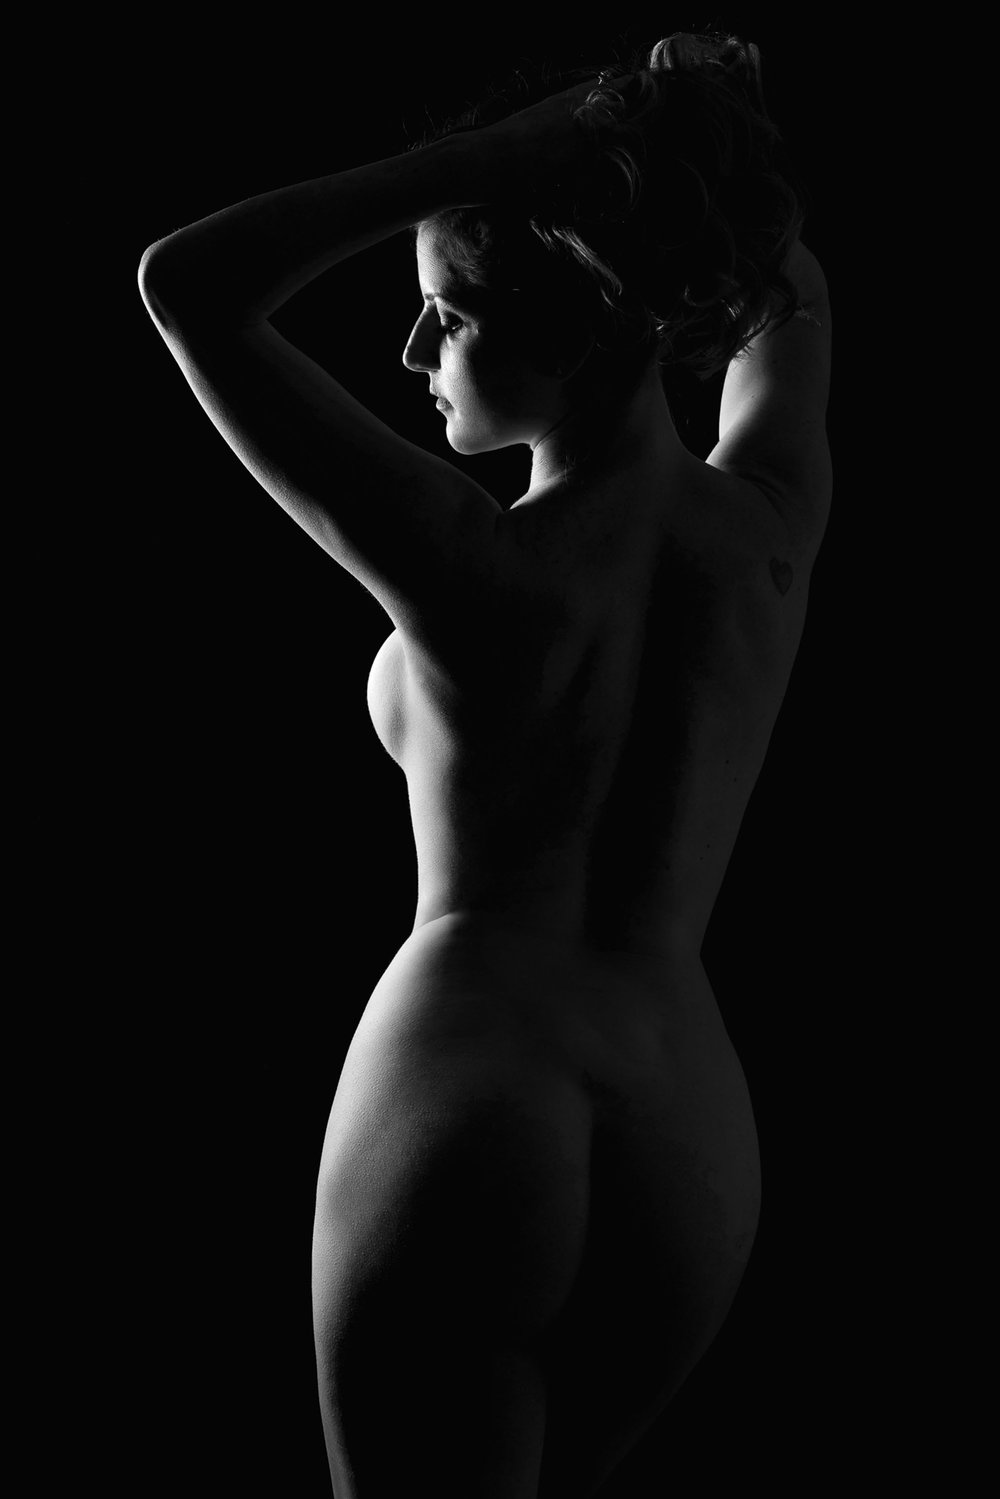 Art nude photography black and white